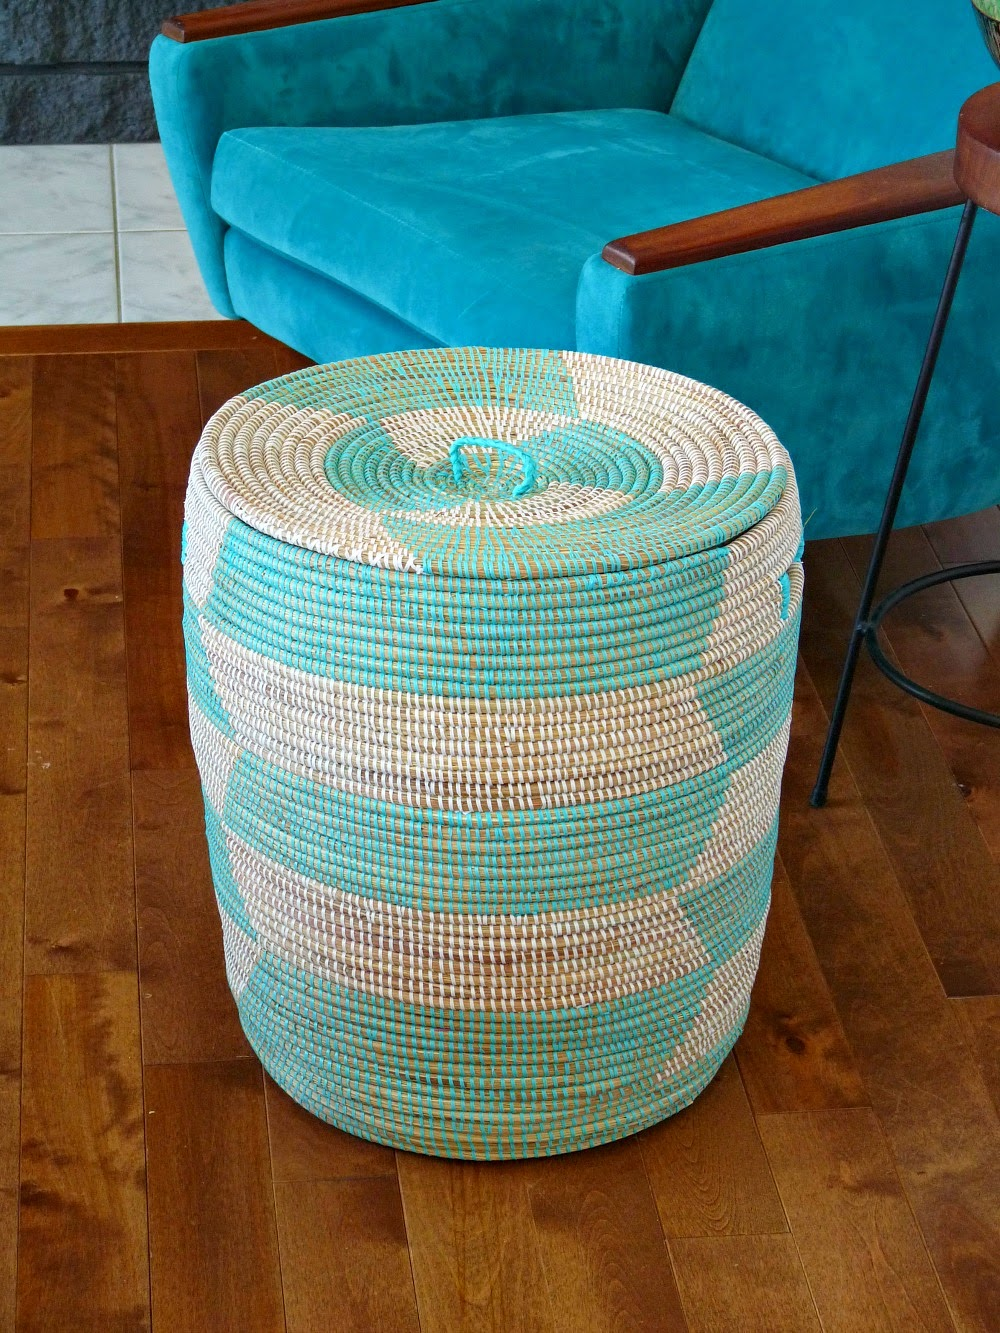 Turquoise Woven Storage Basket with Lid